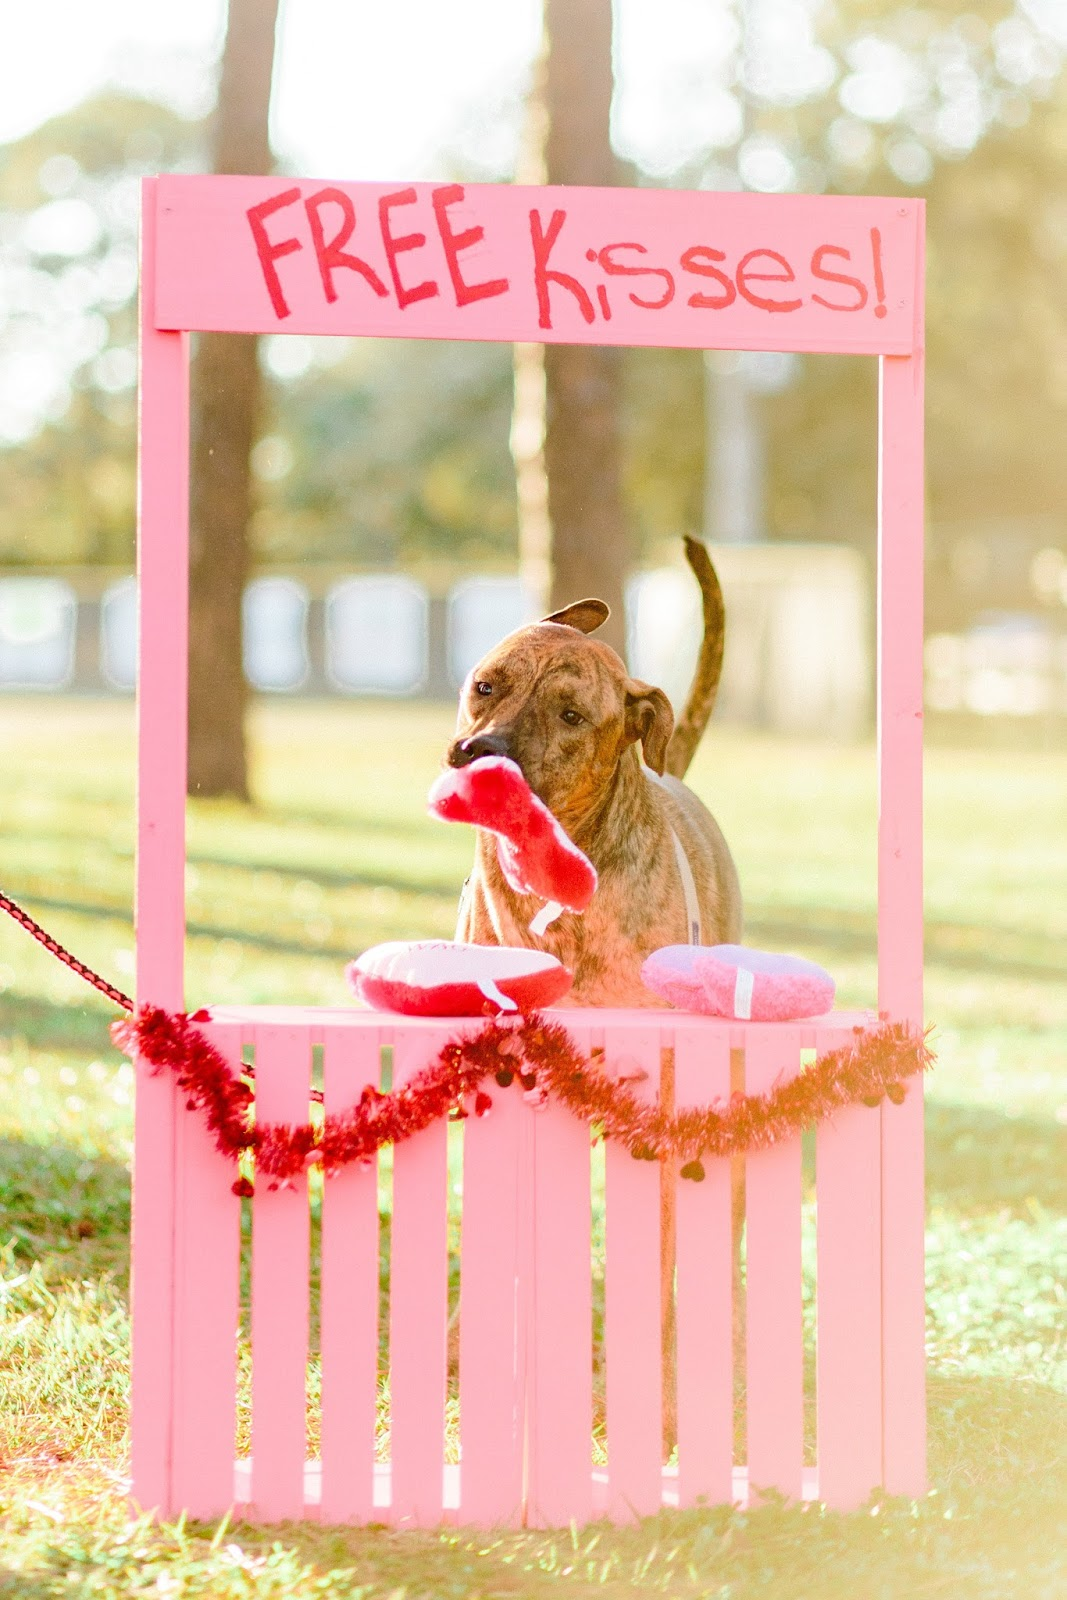 Brindle dog with Valentine's day dog toy in kissing booth